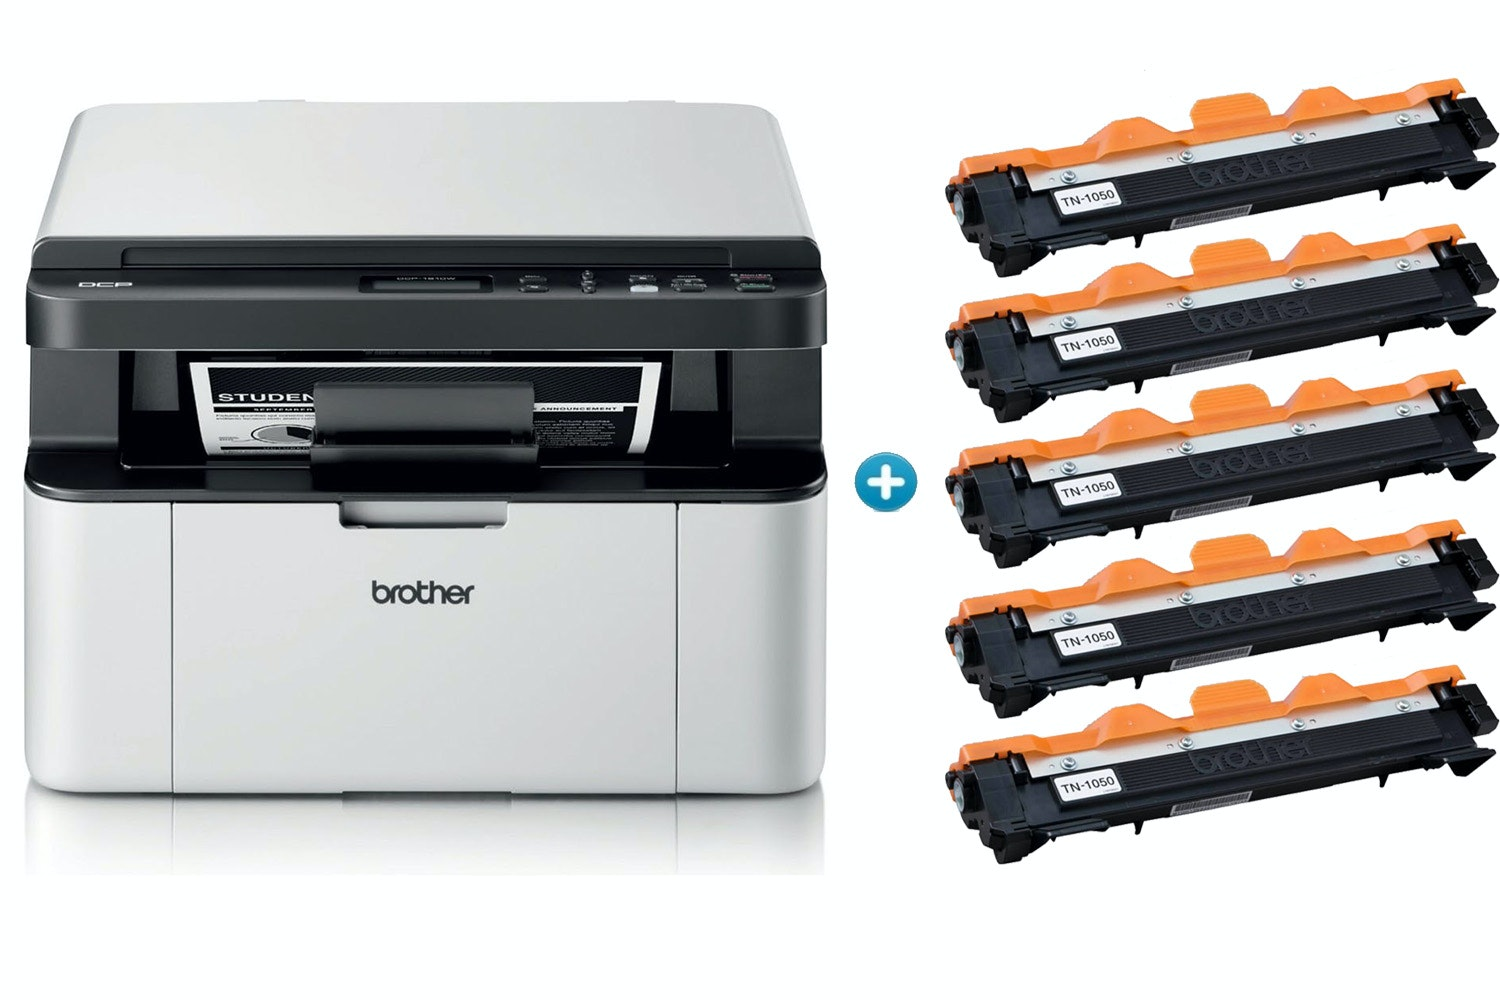 Brother All-in-One Mono Laser Printer & 5 Toner Bundle | DCP-1610W